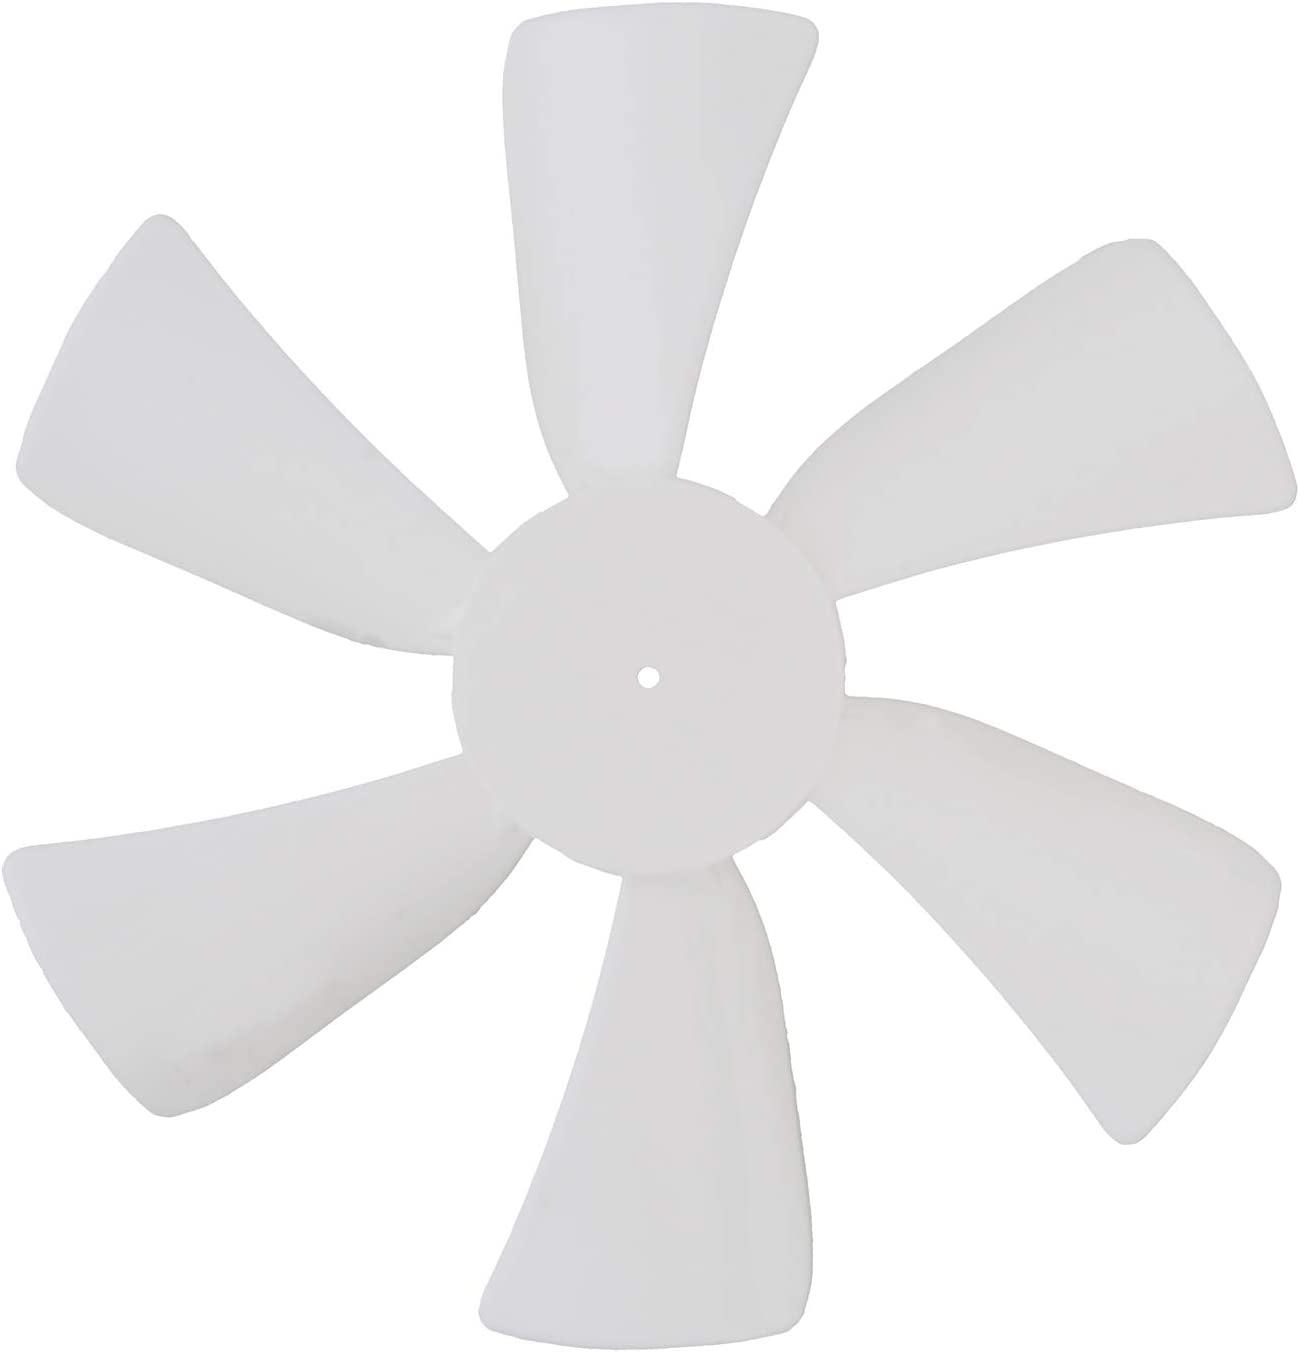 Dumble Price reduction Fan Blades Replacement with Round White 6in Bore Max 86% OFF 0.094in